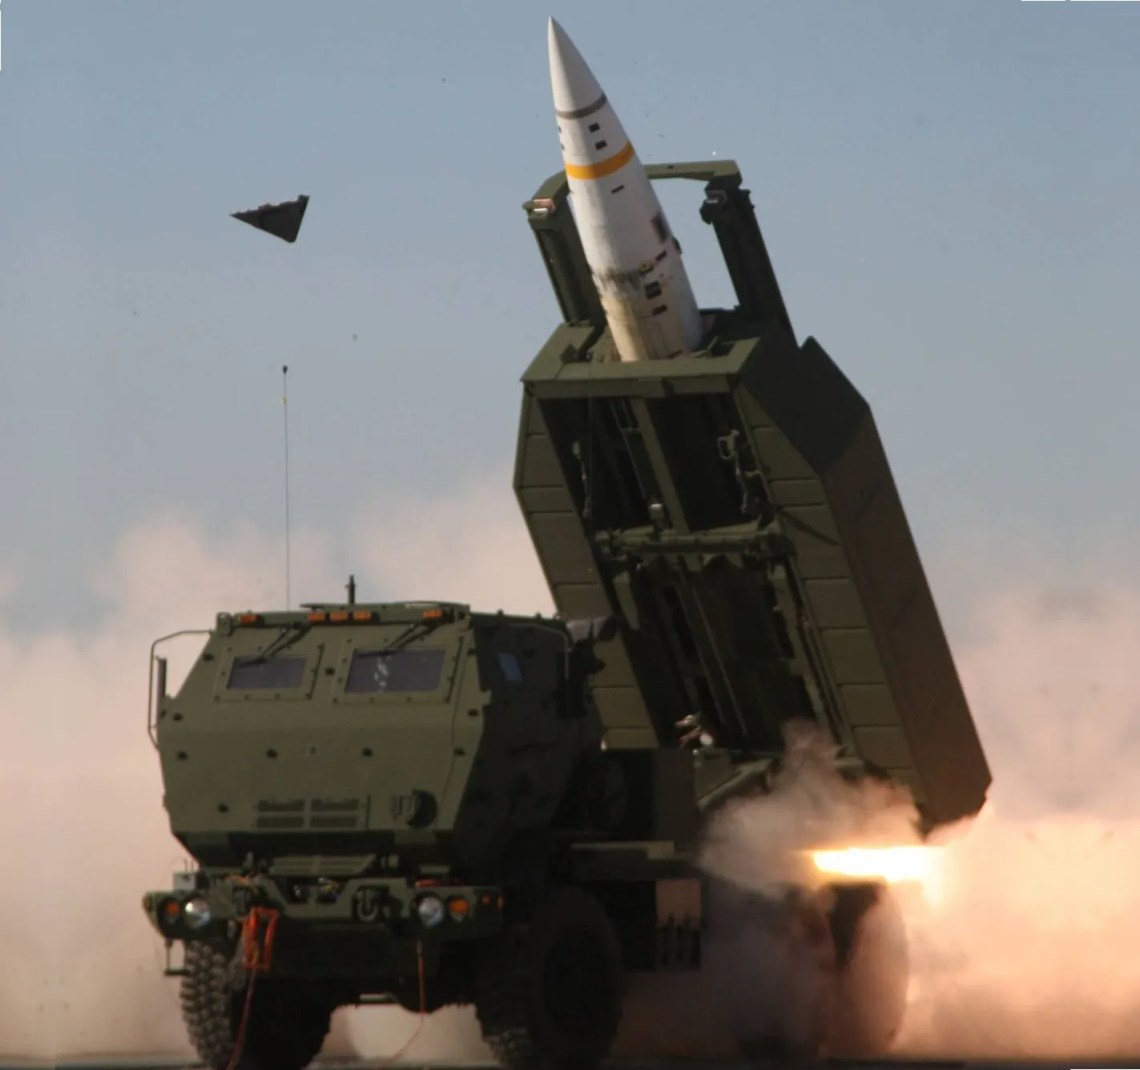 An Army Tactical Missile System (ATACMS) being launched by a M142